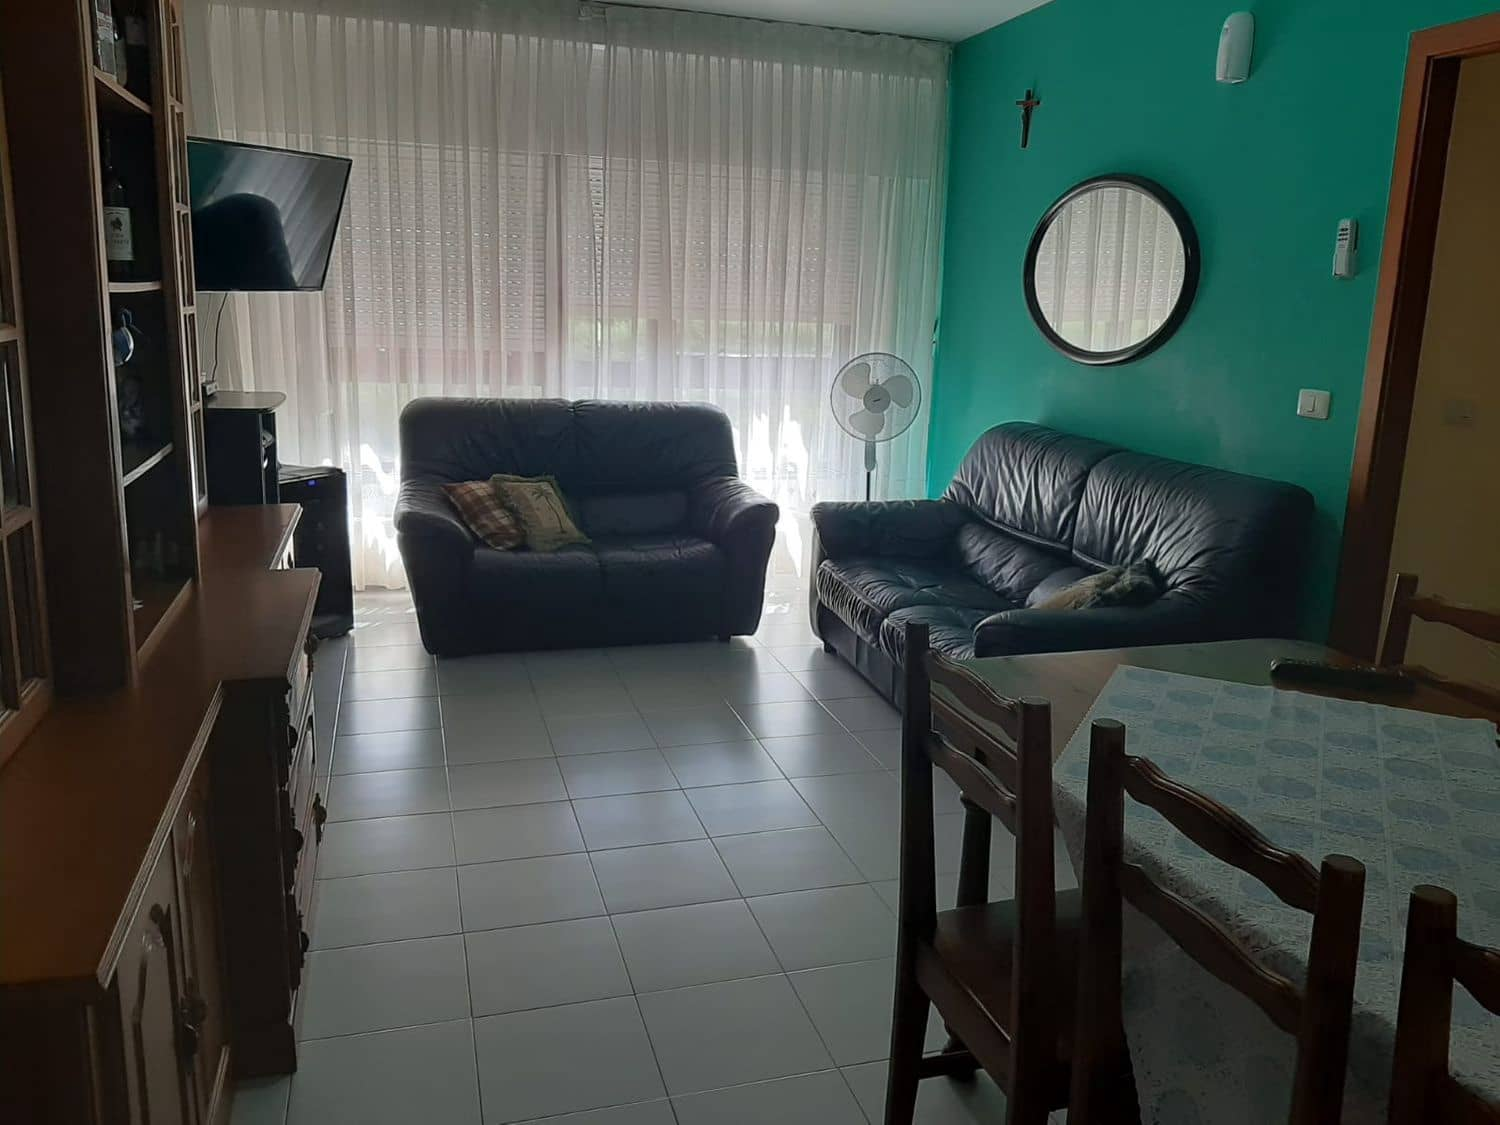 3 bedroom Apartment for sale in A Estrada with garage - € 75,000 (Ref: 6242432)